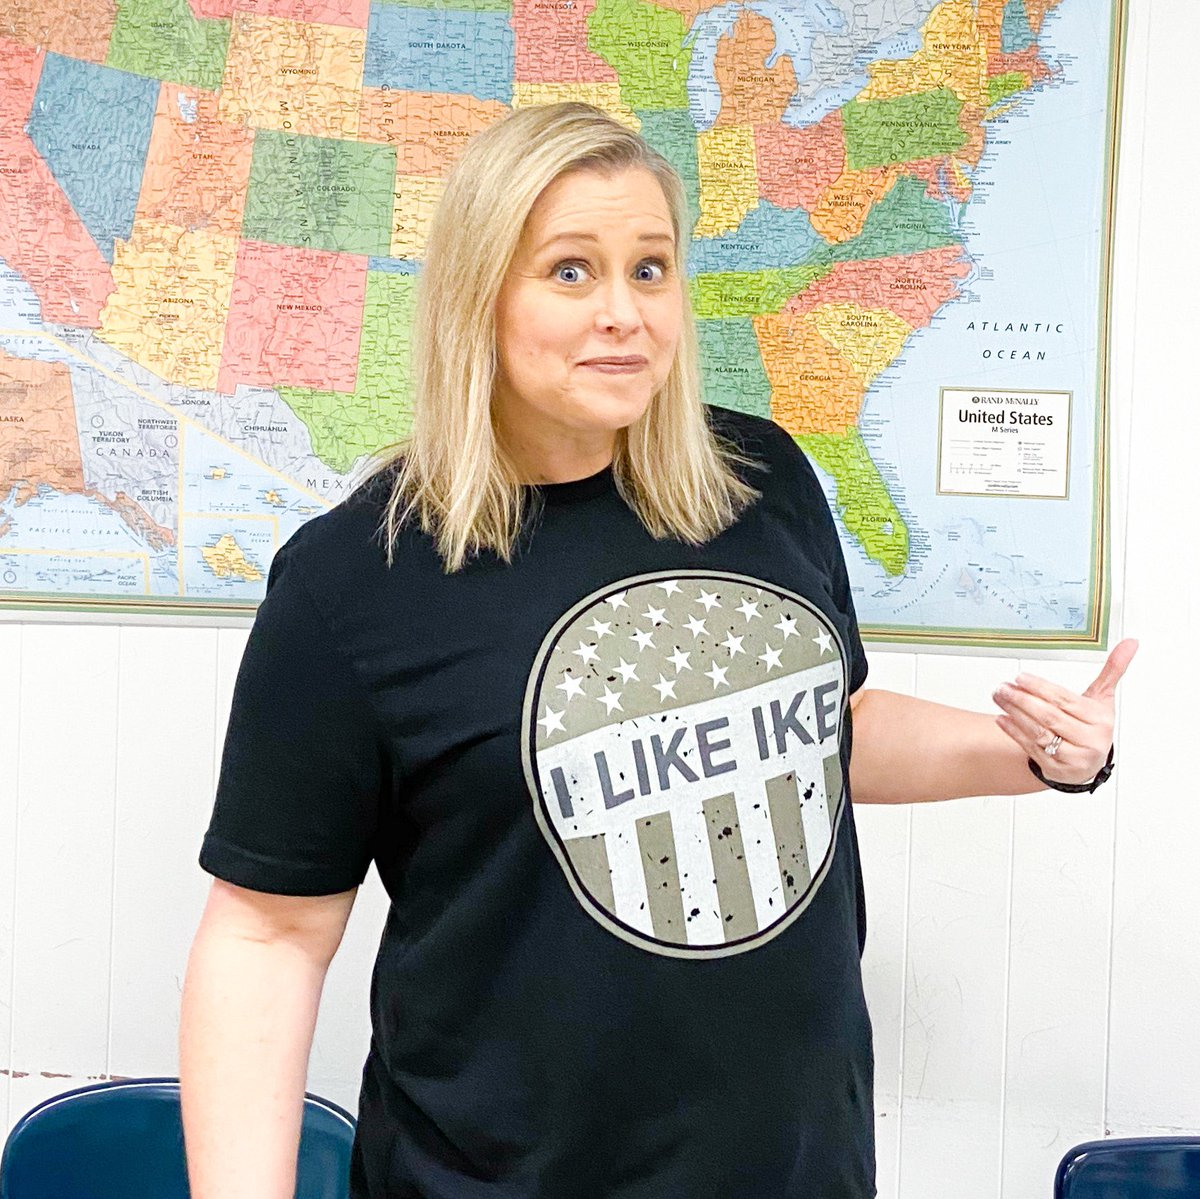 """Teaching the Cold War today.... gotta wear my """"I like Ike"""" shirt from Etsy!"""